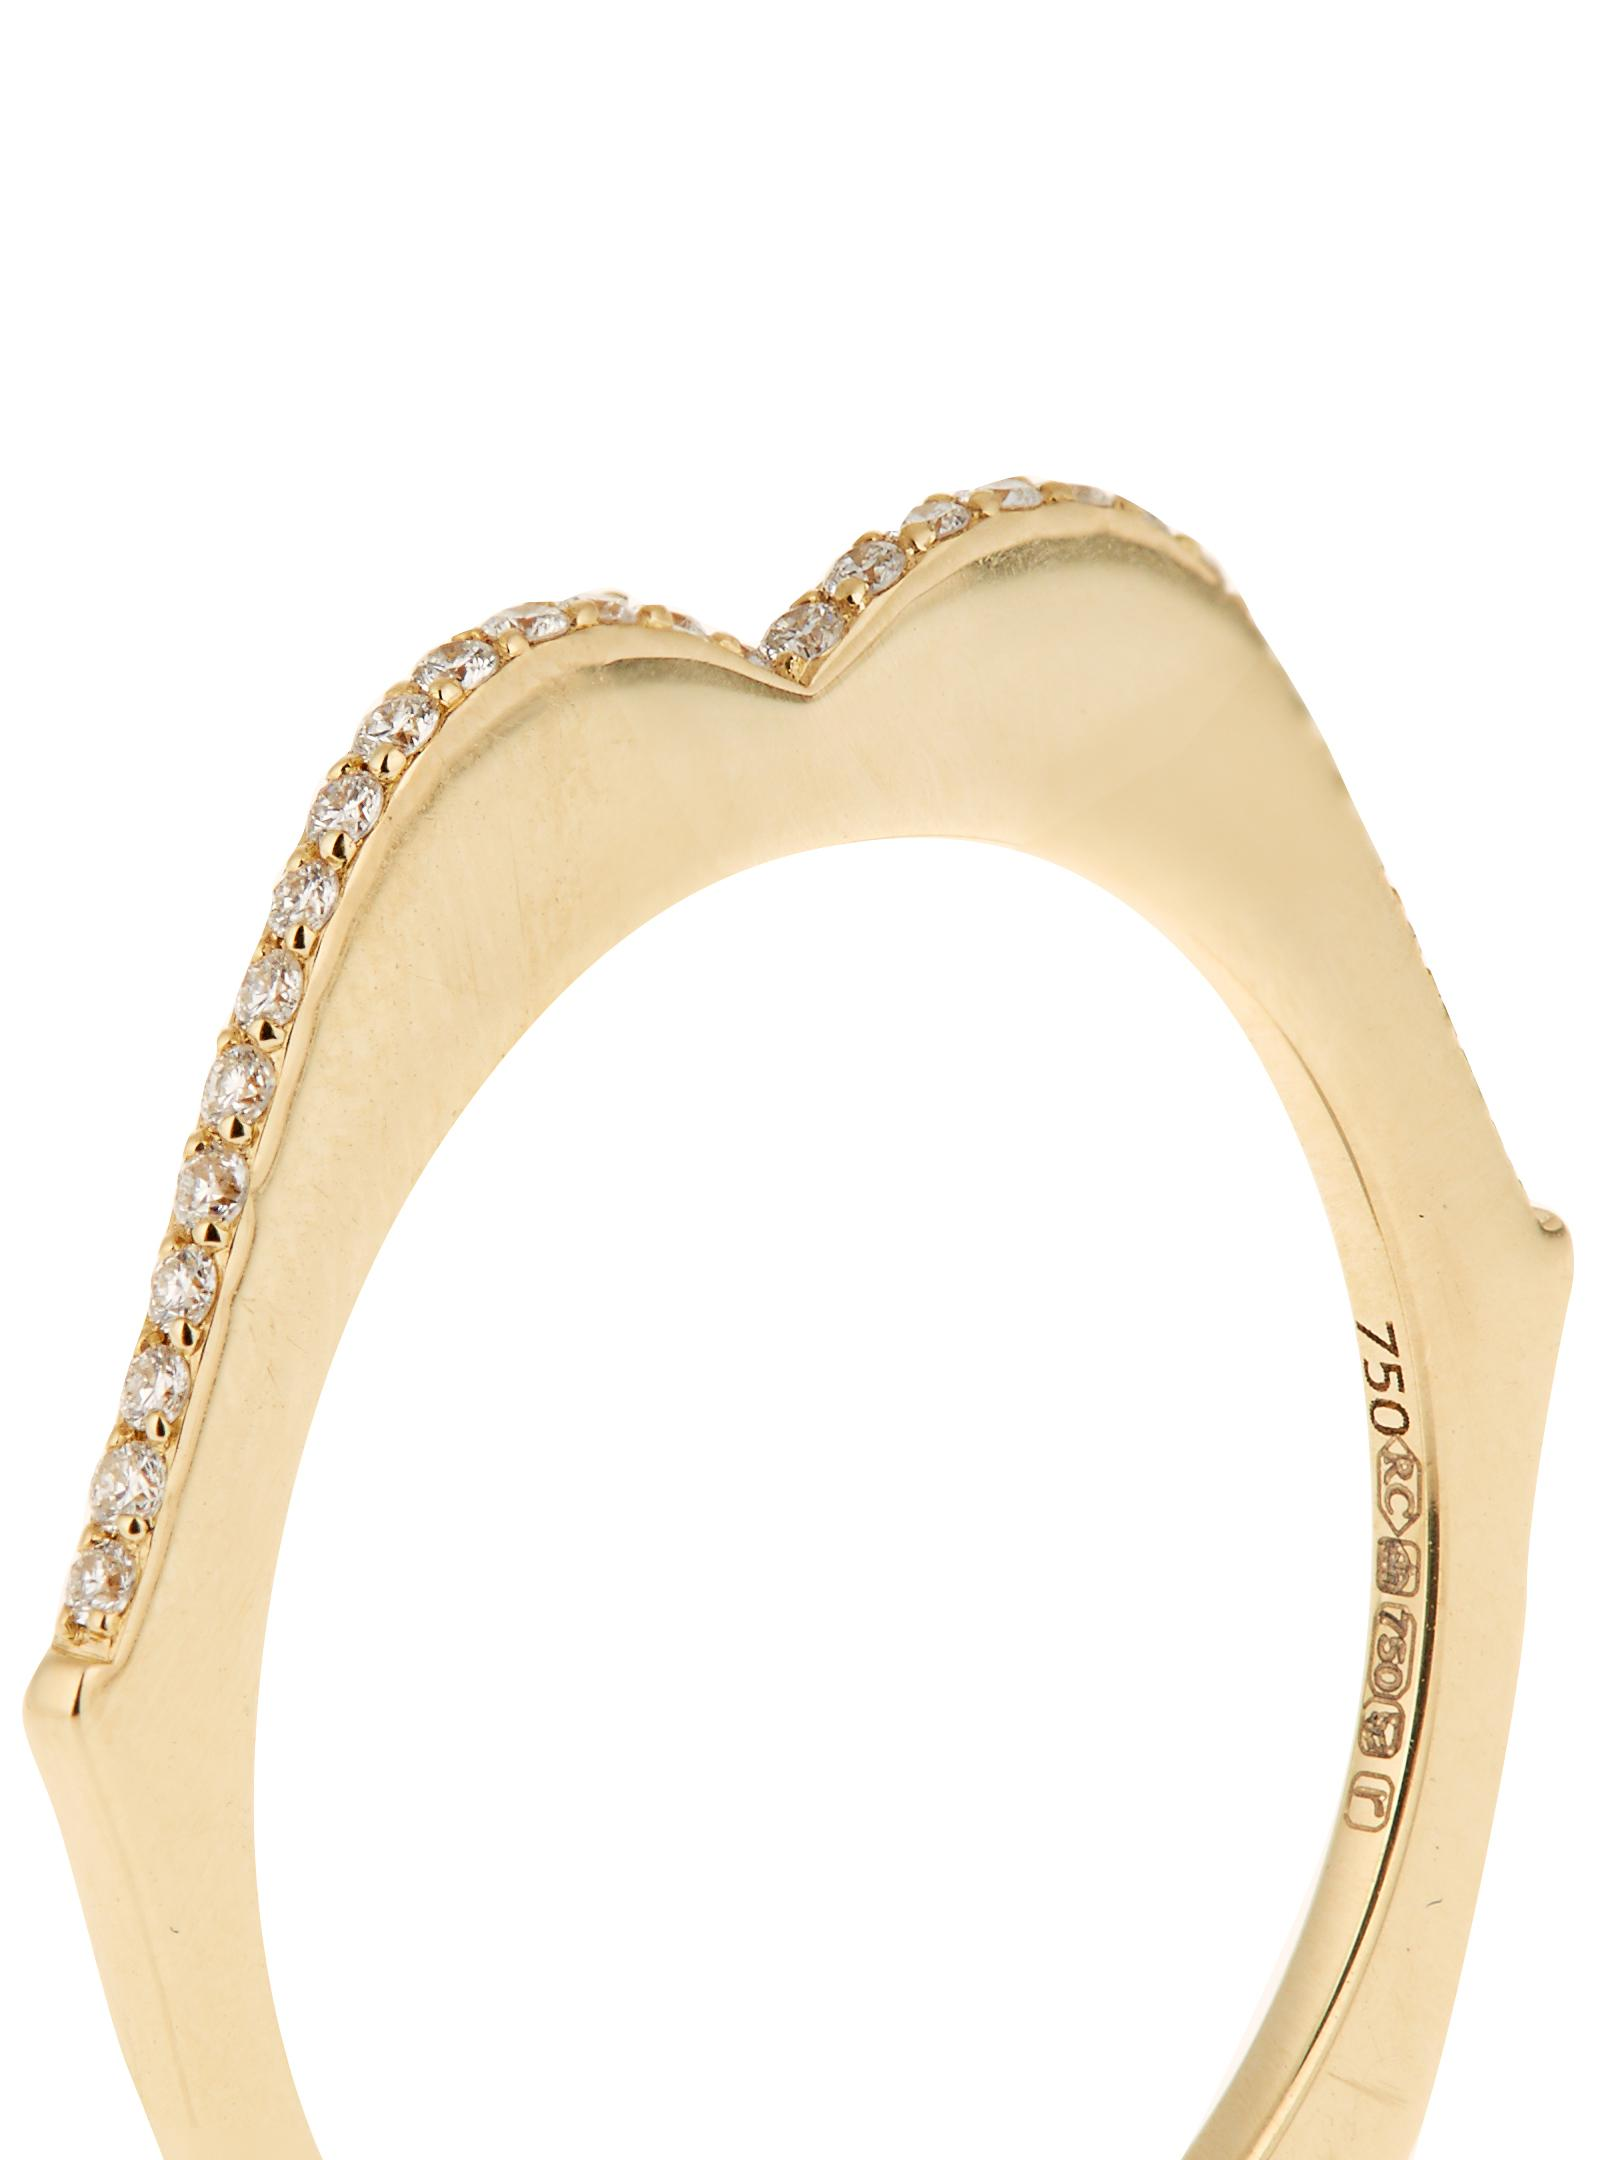 Raphaele Canot OMG! diamond & yellow-gold ring AE937N